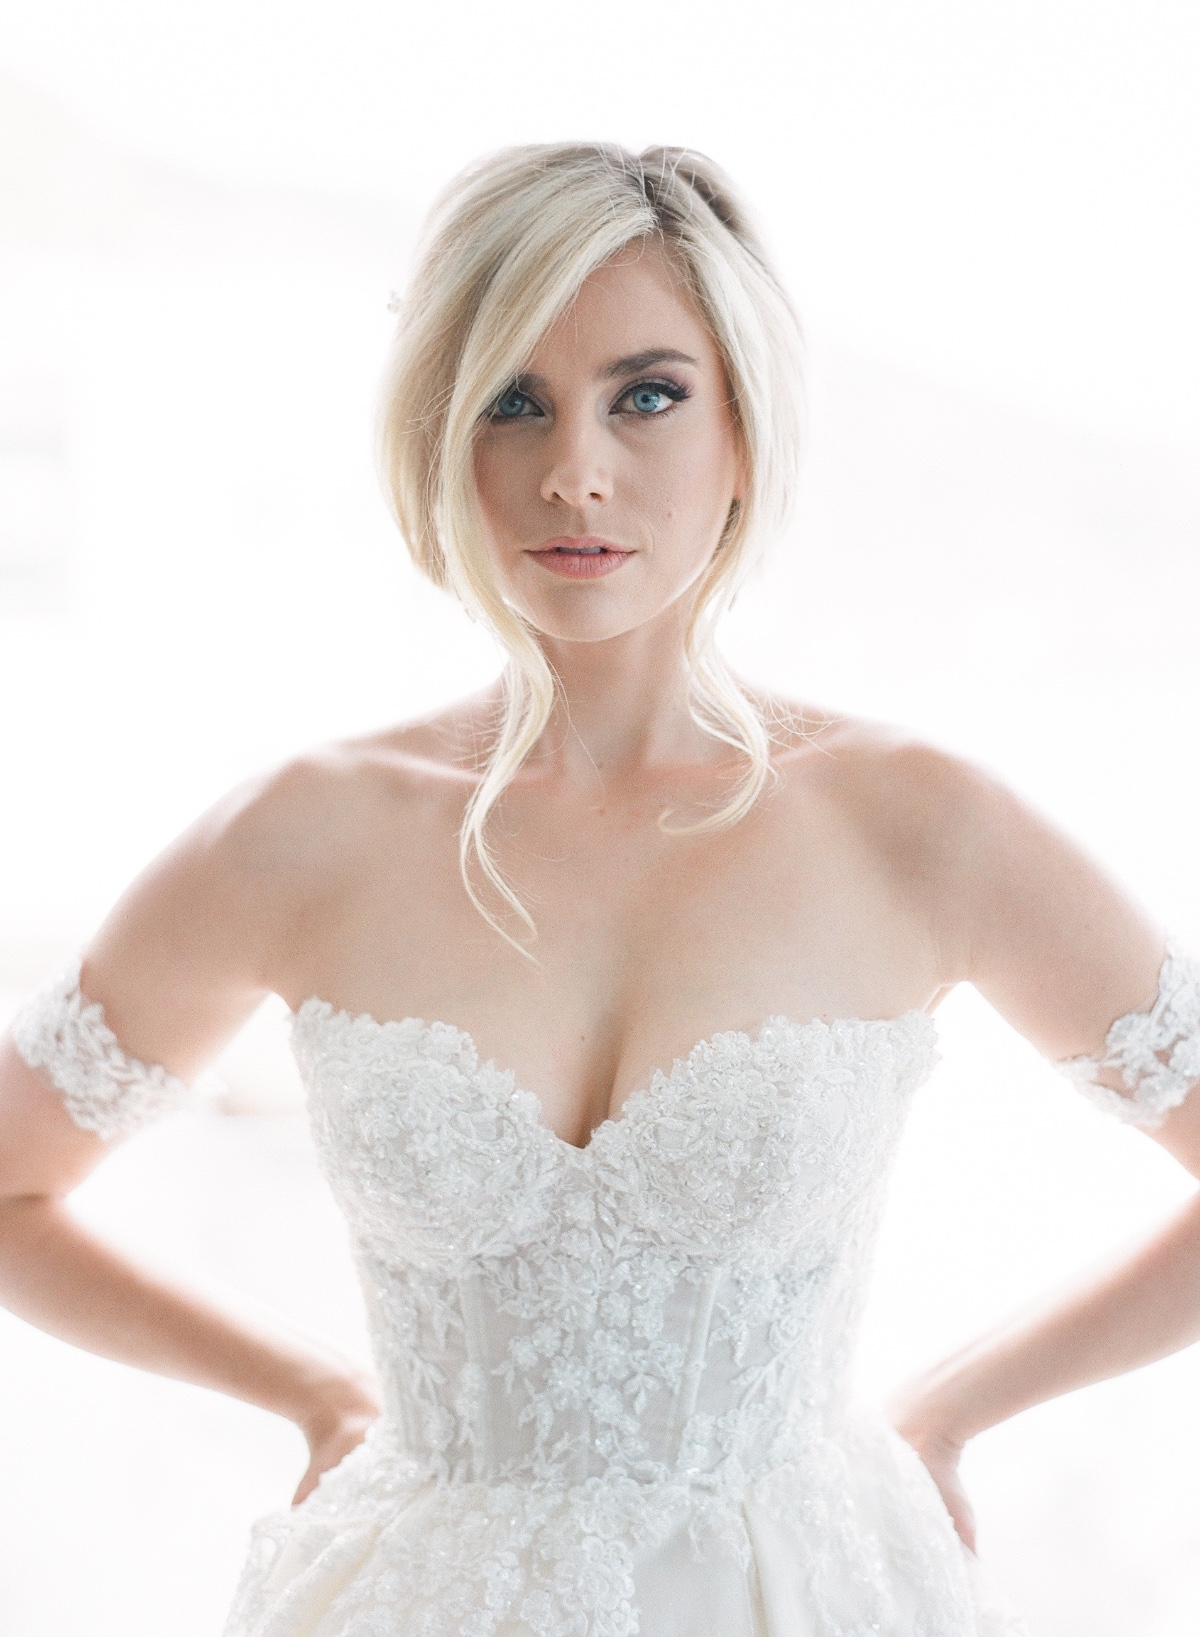 Megan from Lifetime's Marrying Millions.